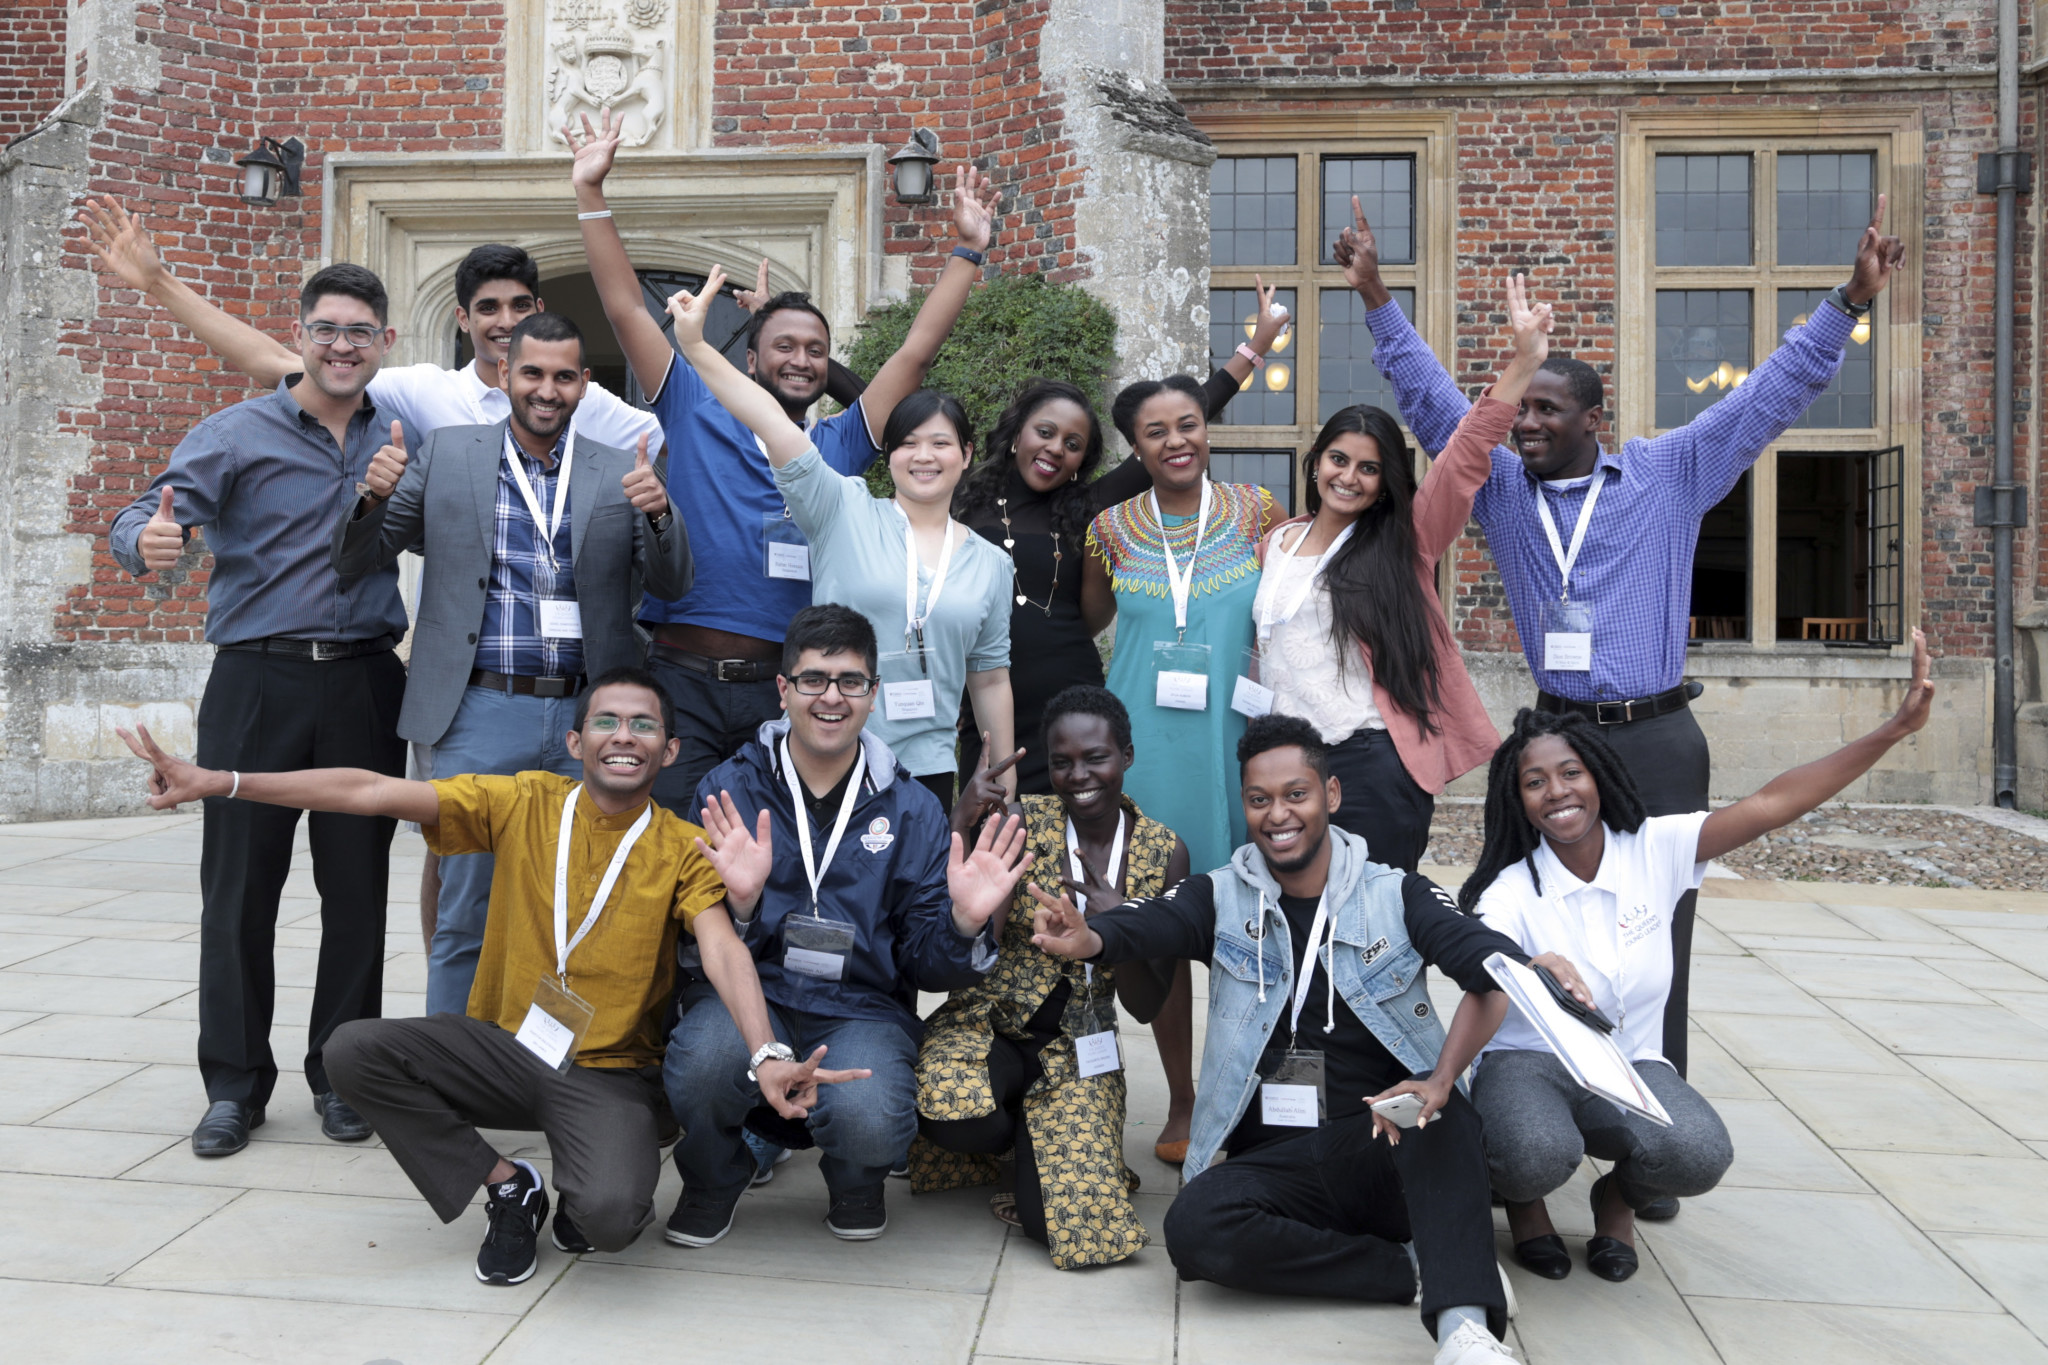 The 2017 Queens Young Leader award winners visit Cambridge University